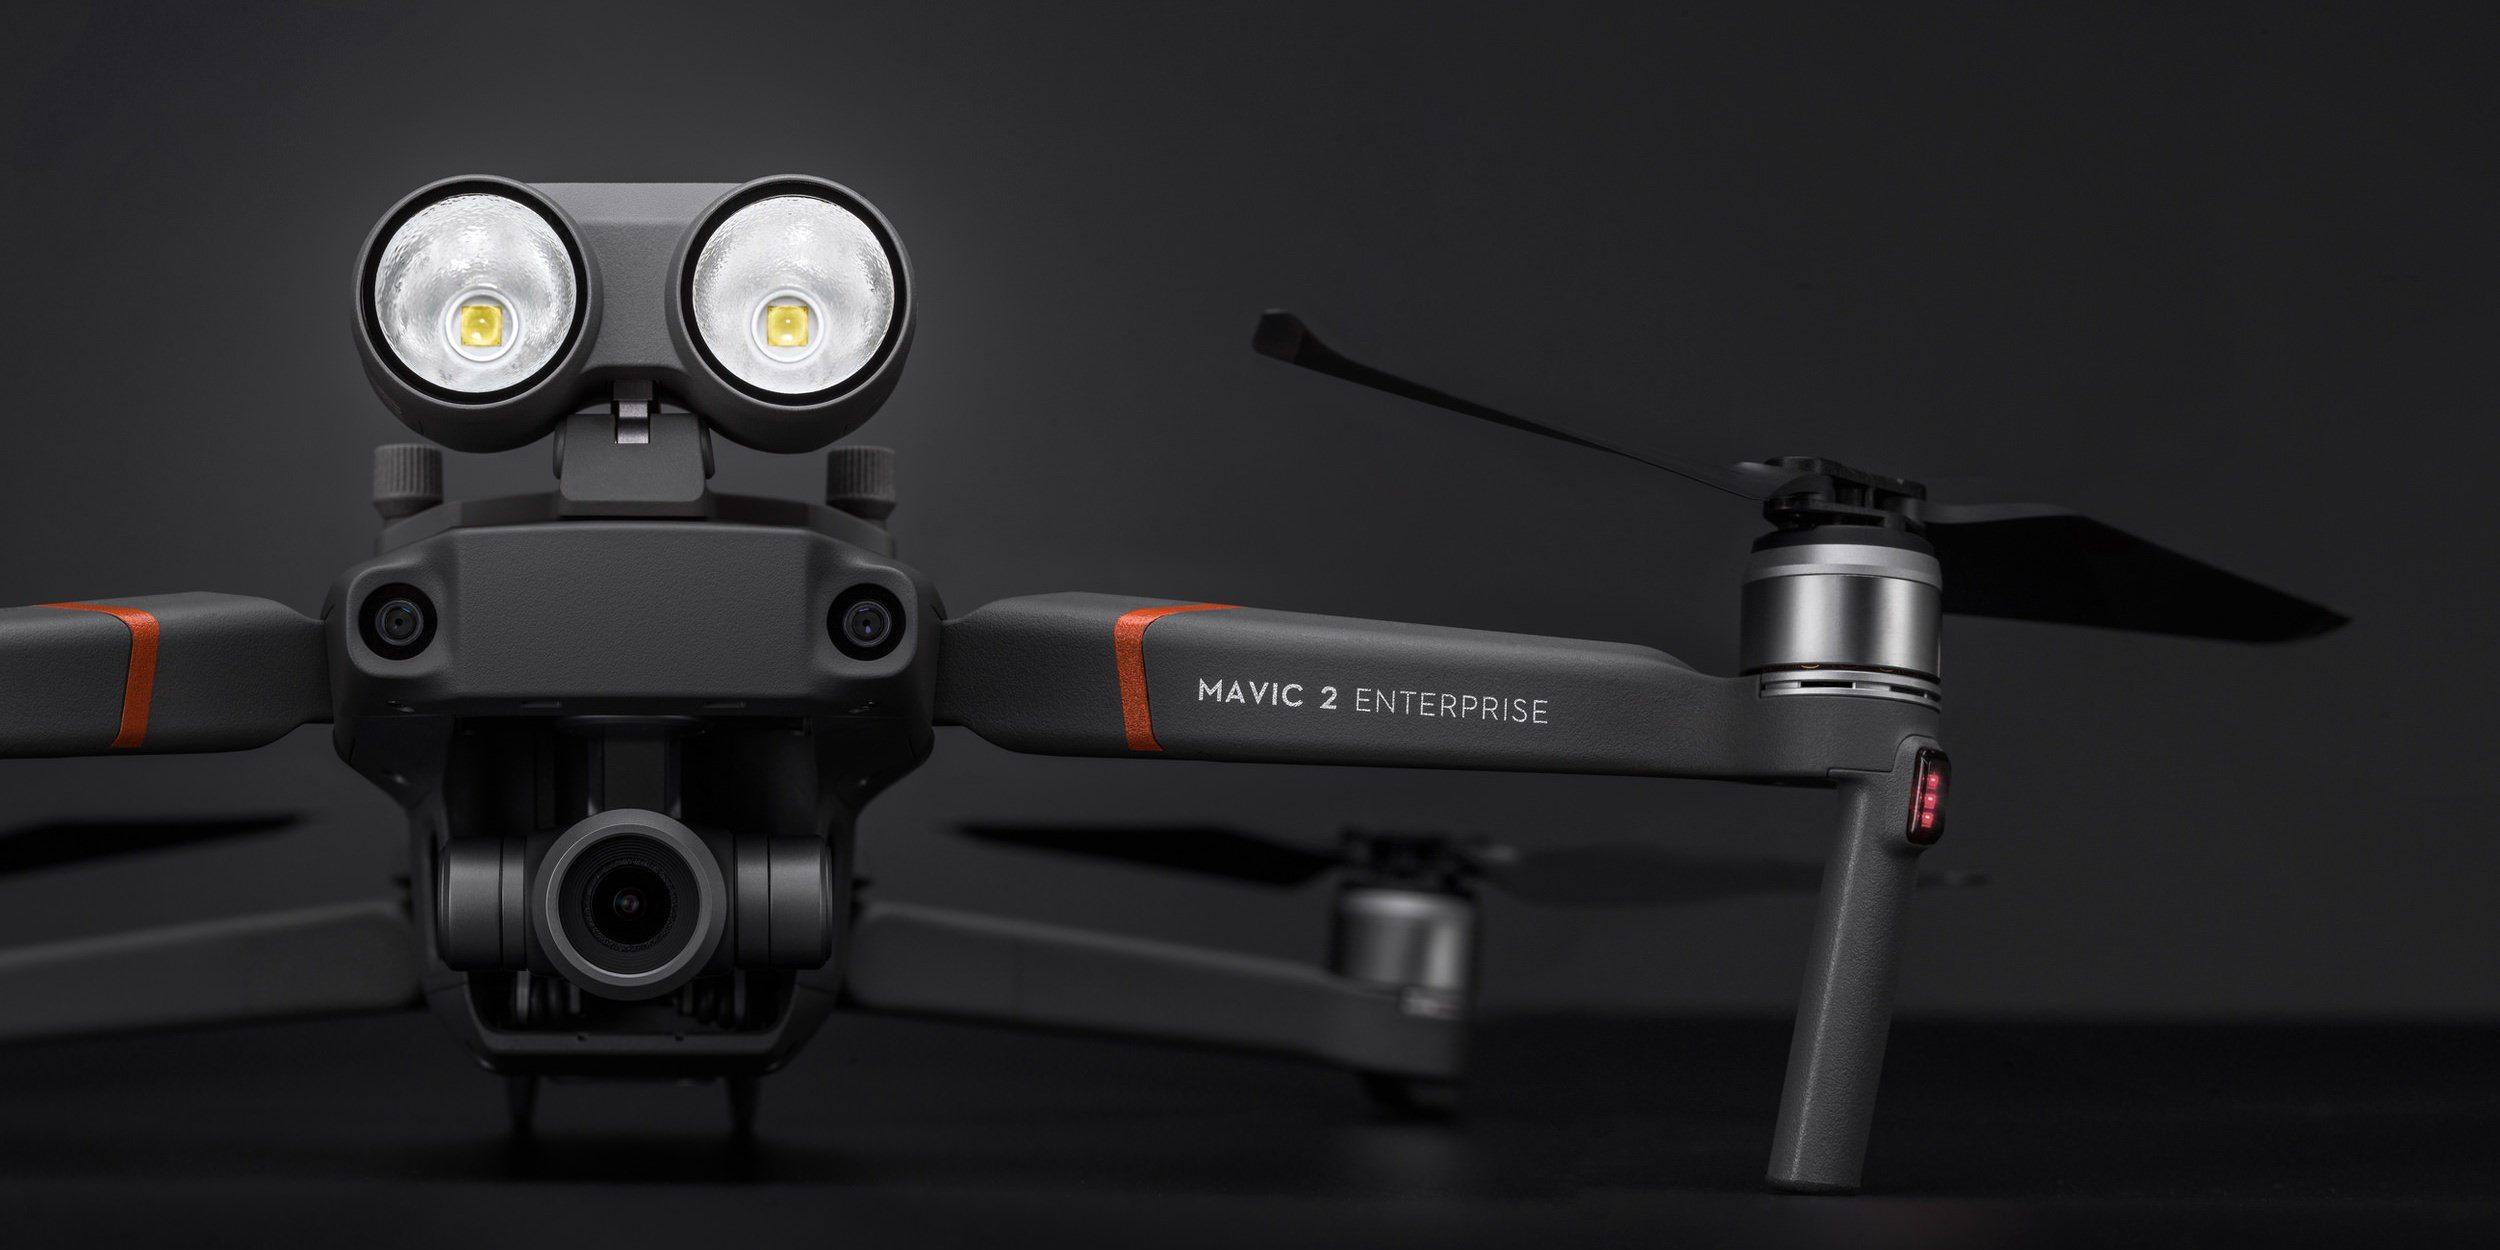 https://st.bmshop.net/mtar11511/images/DJI_Mavic_2_Enterprise.jpg